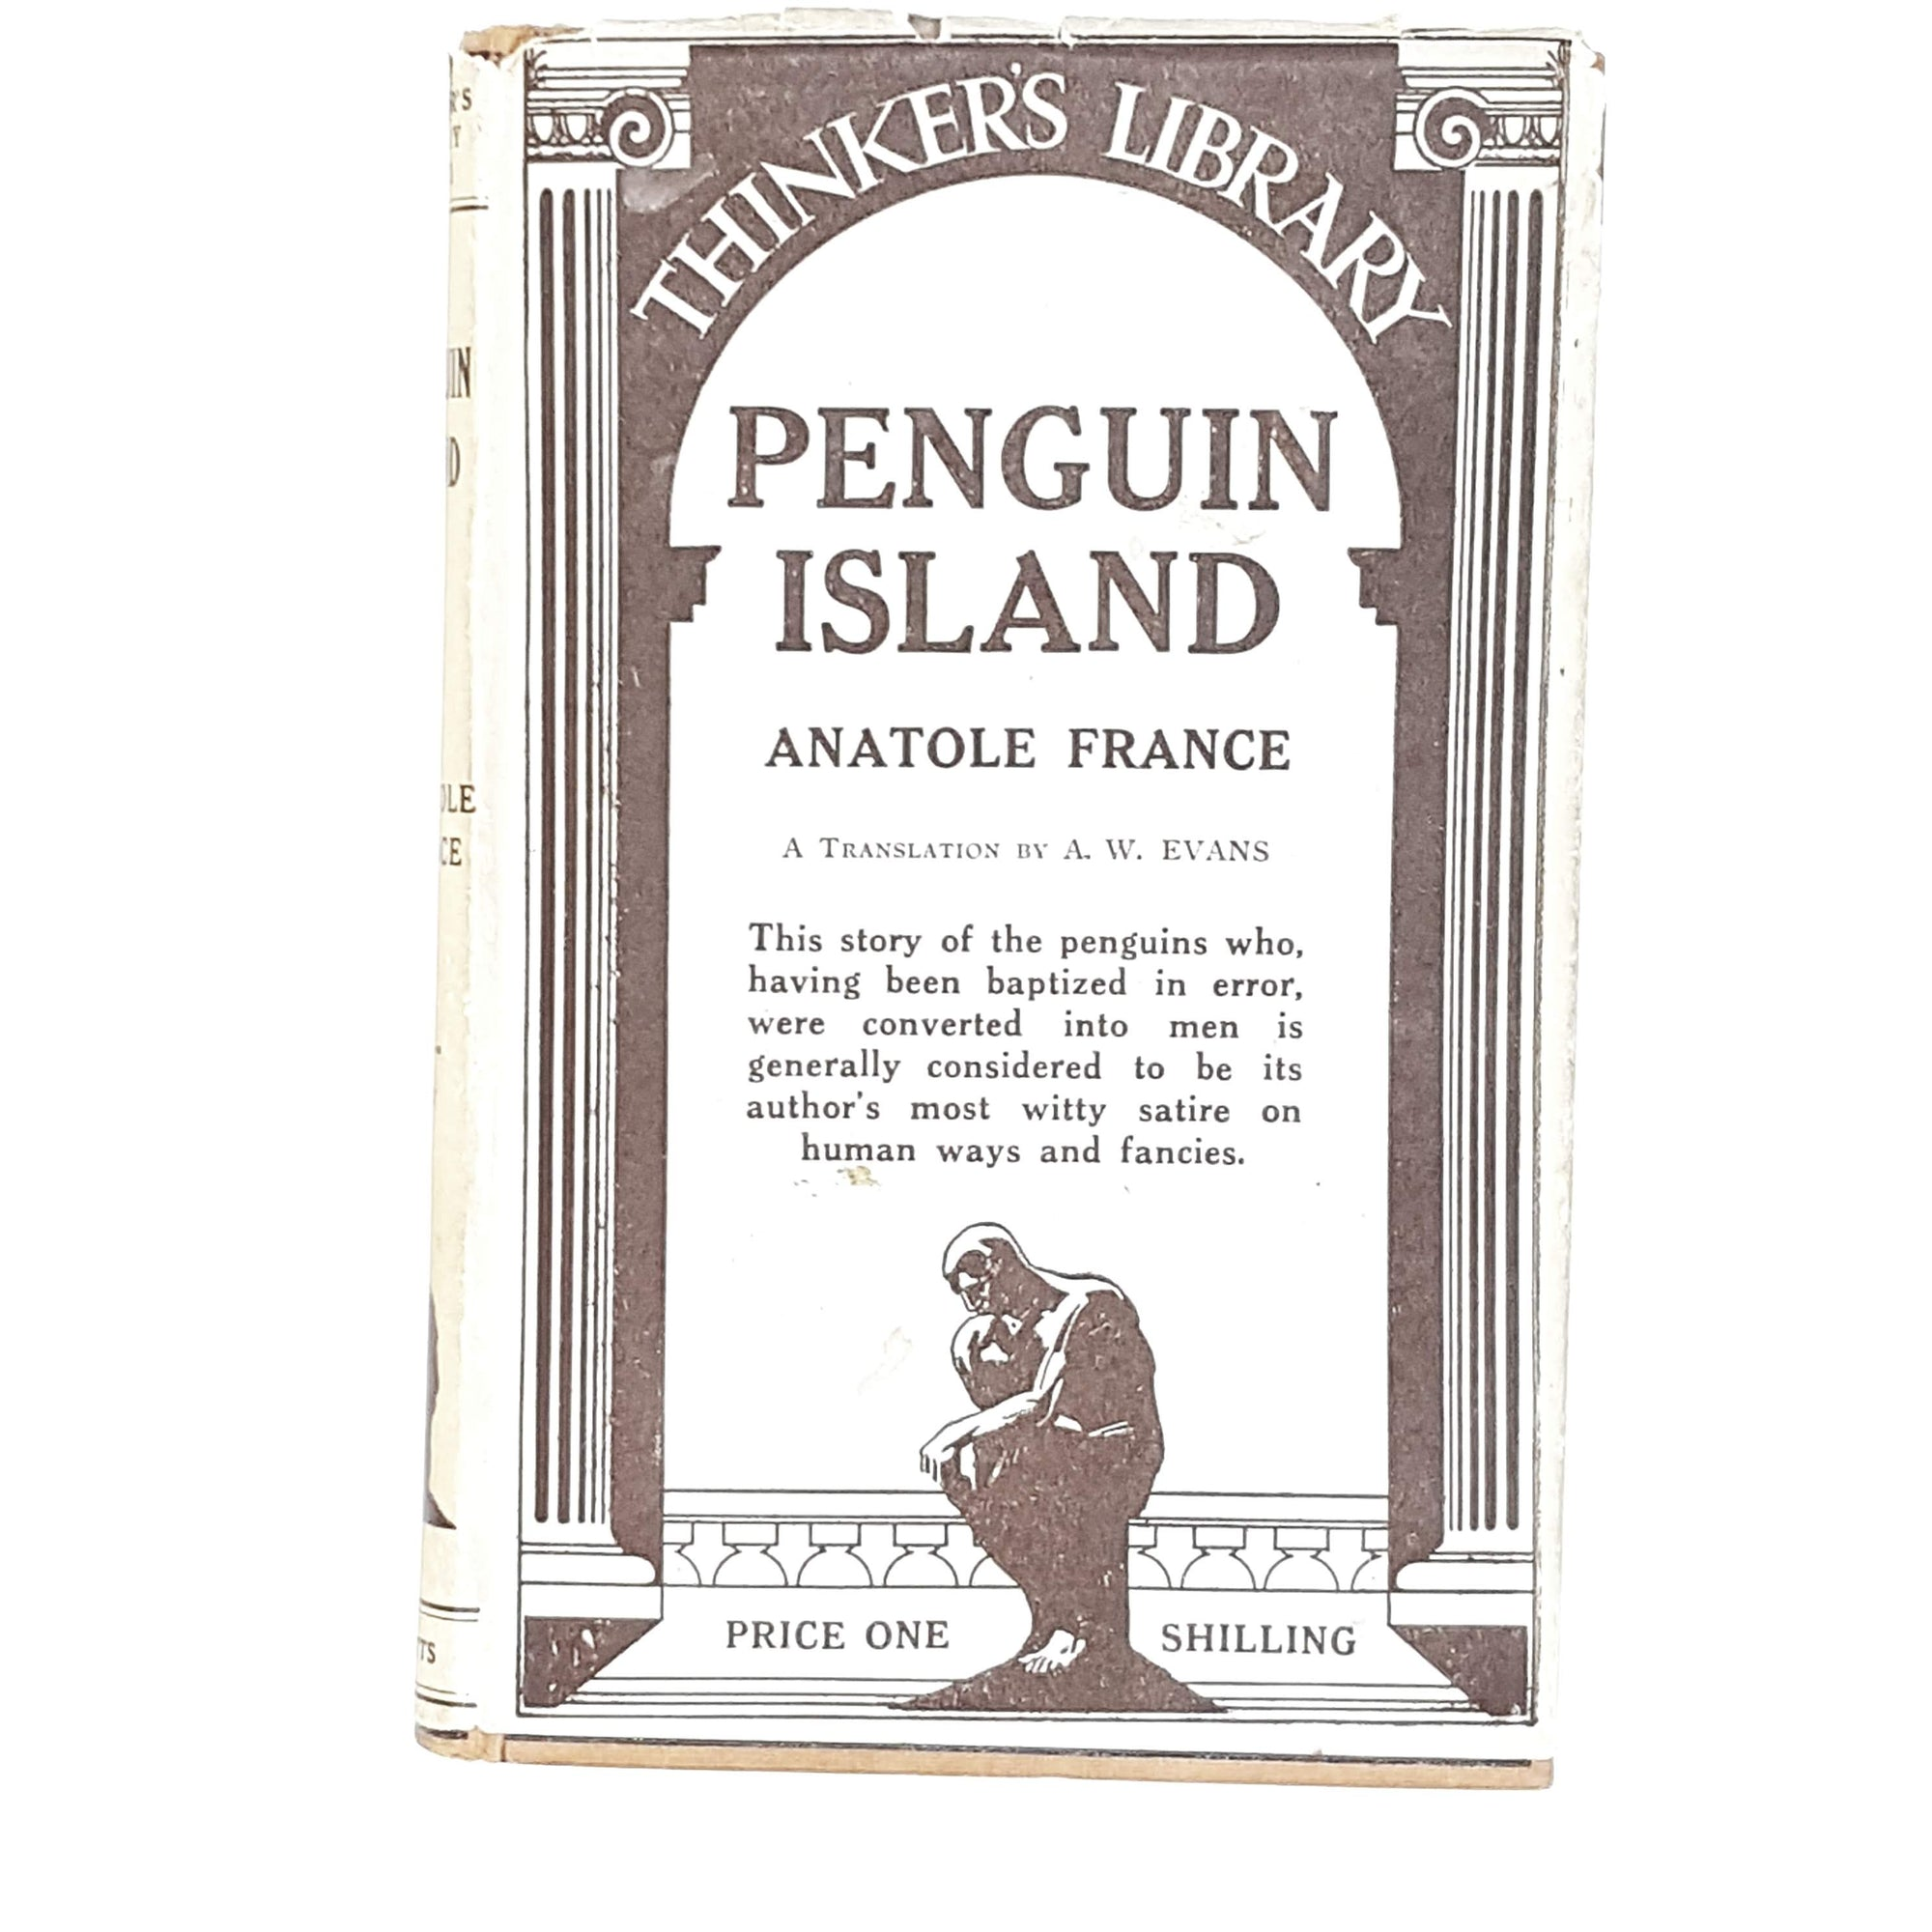 Penguin Island by Anatole France 1934